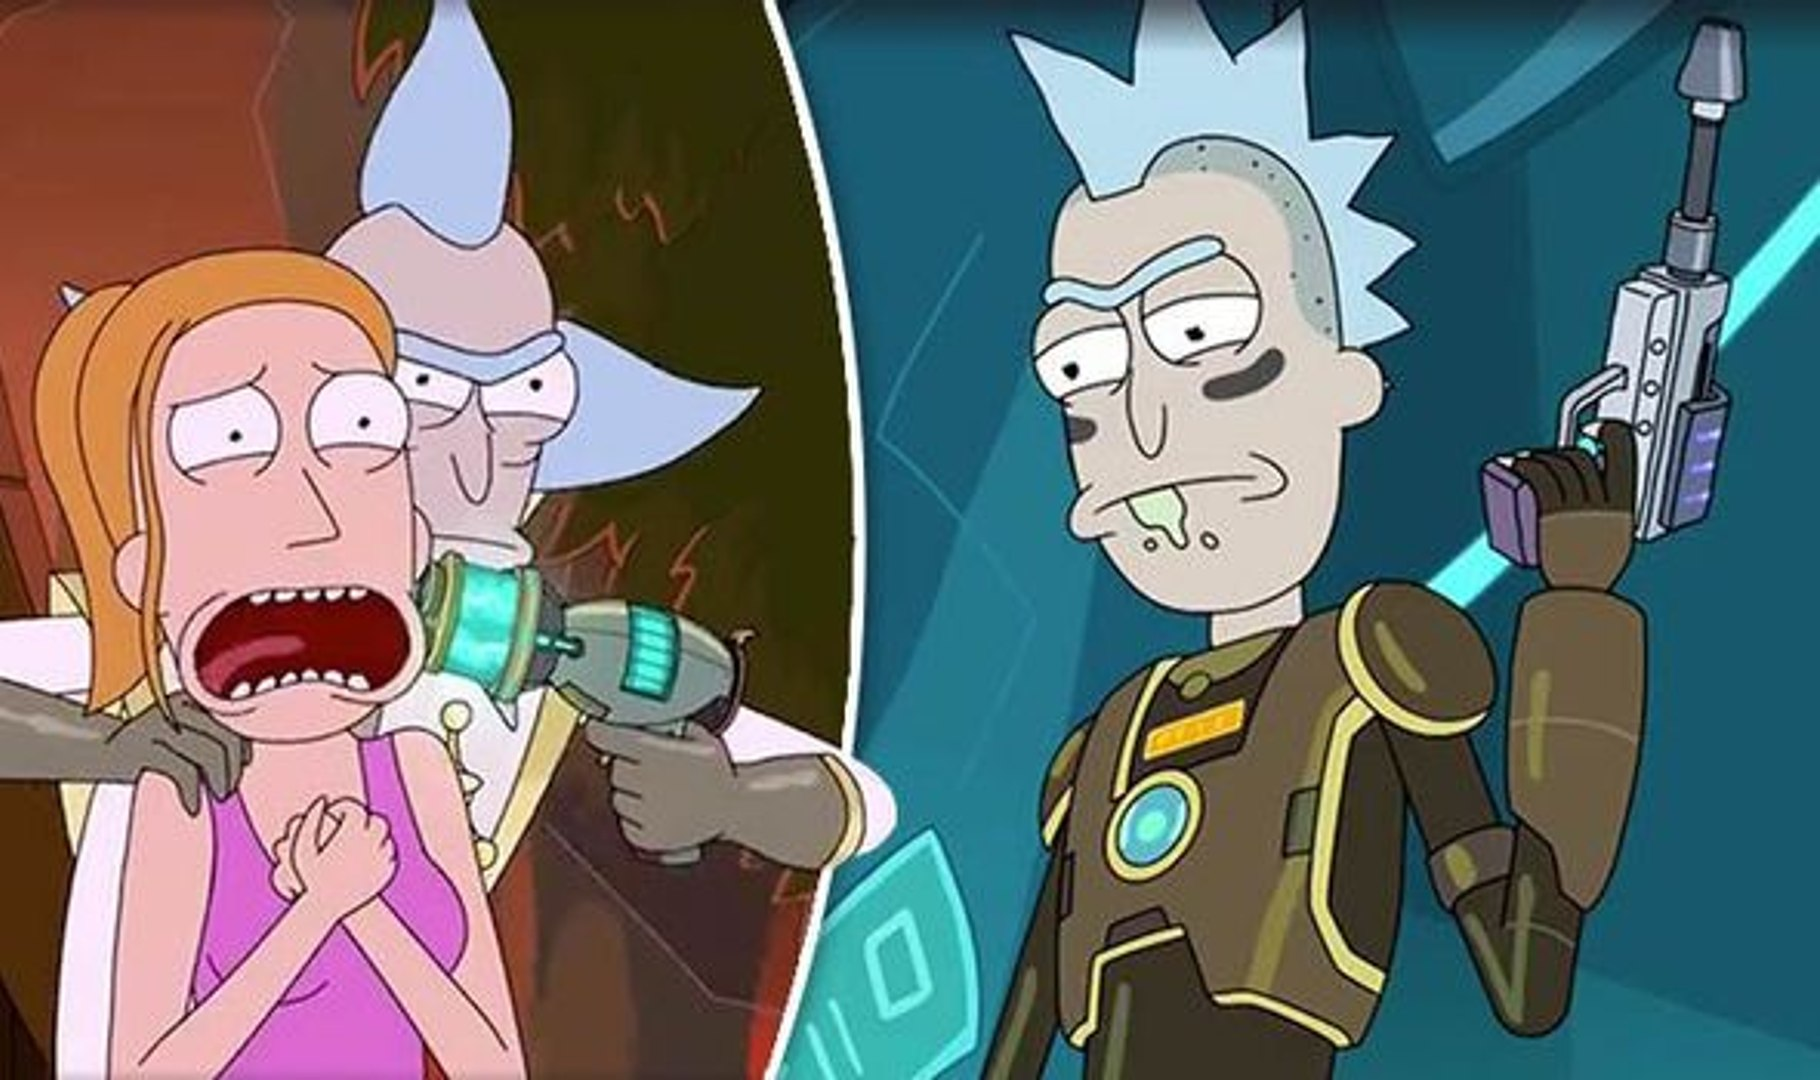 Rick And Morty Season 3 Episode 9 Eps 9 English Subtitles Video Dailymotion Aliens send rick, morty and jerry into an alternate reality, and rick tries to get them out as oblivious jerry pitches a marketing slogan for apples. dailymotion